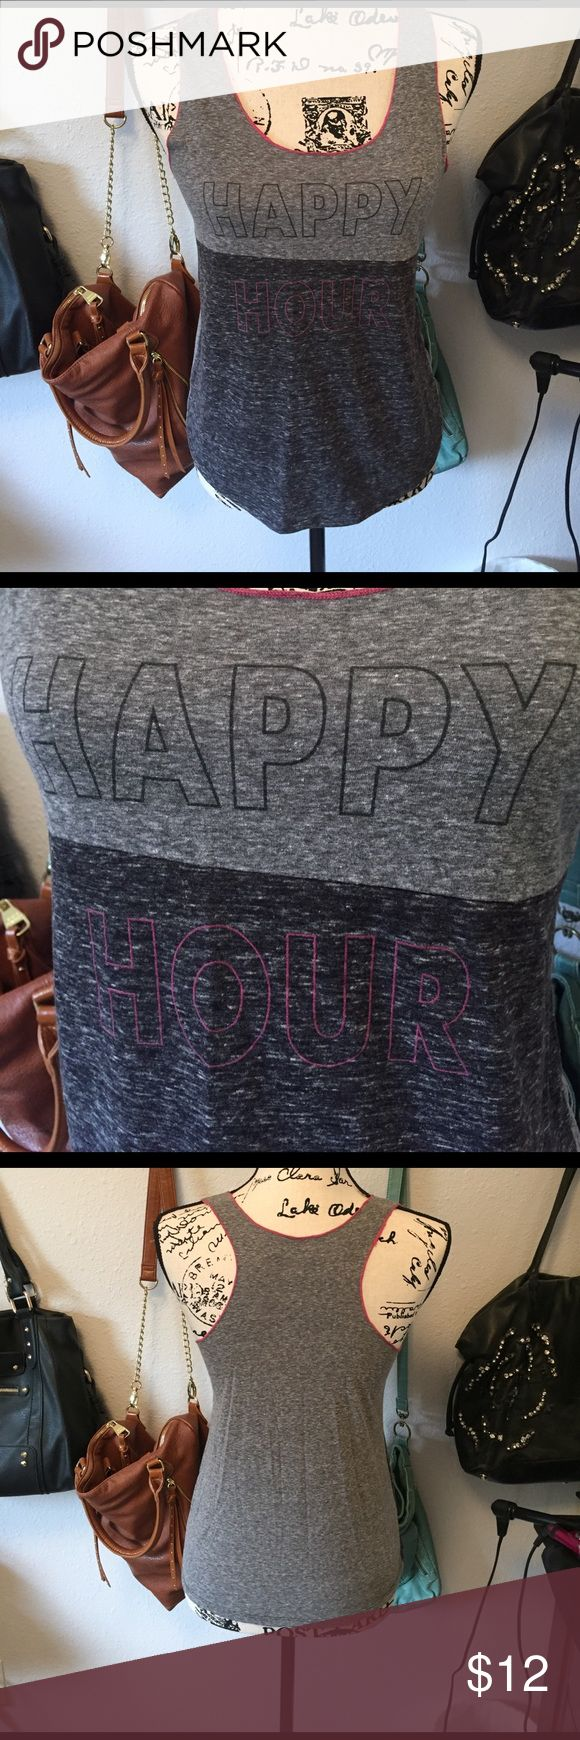 Happy Hour Tank Worn once, like new condition. Purchased from TJ Maxx. Pink piping on the trim Center Stage Tops Tank Tops